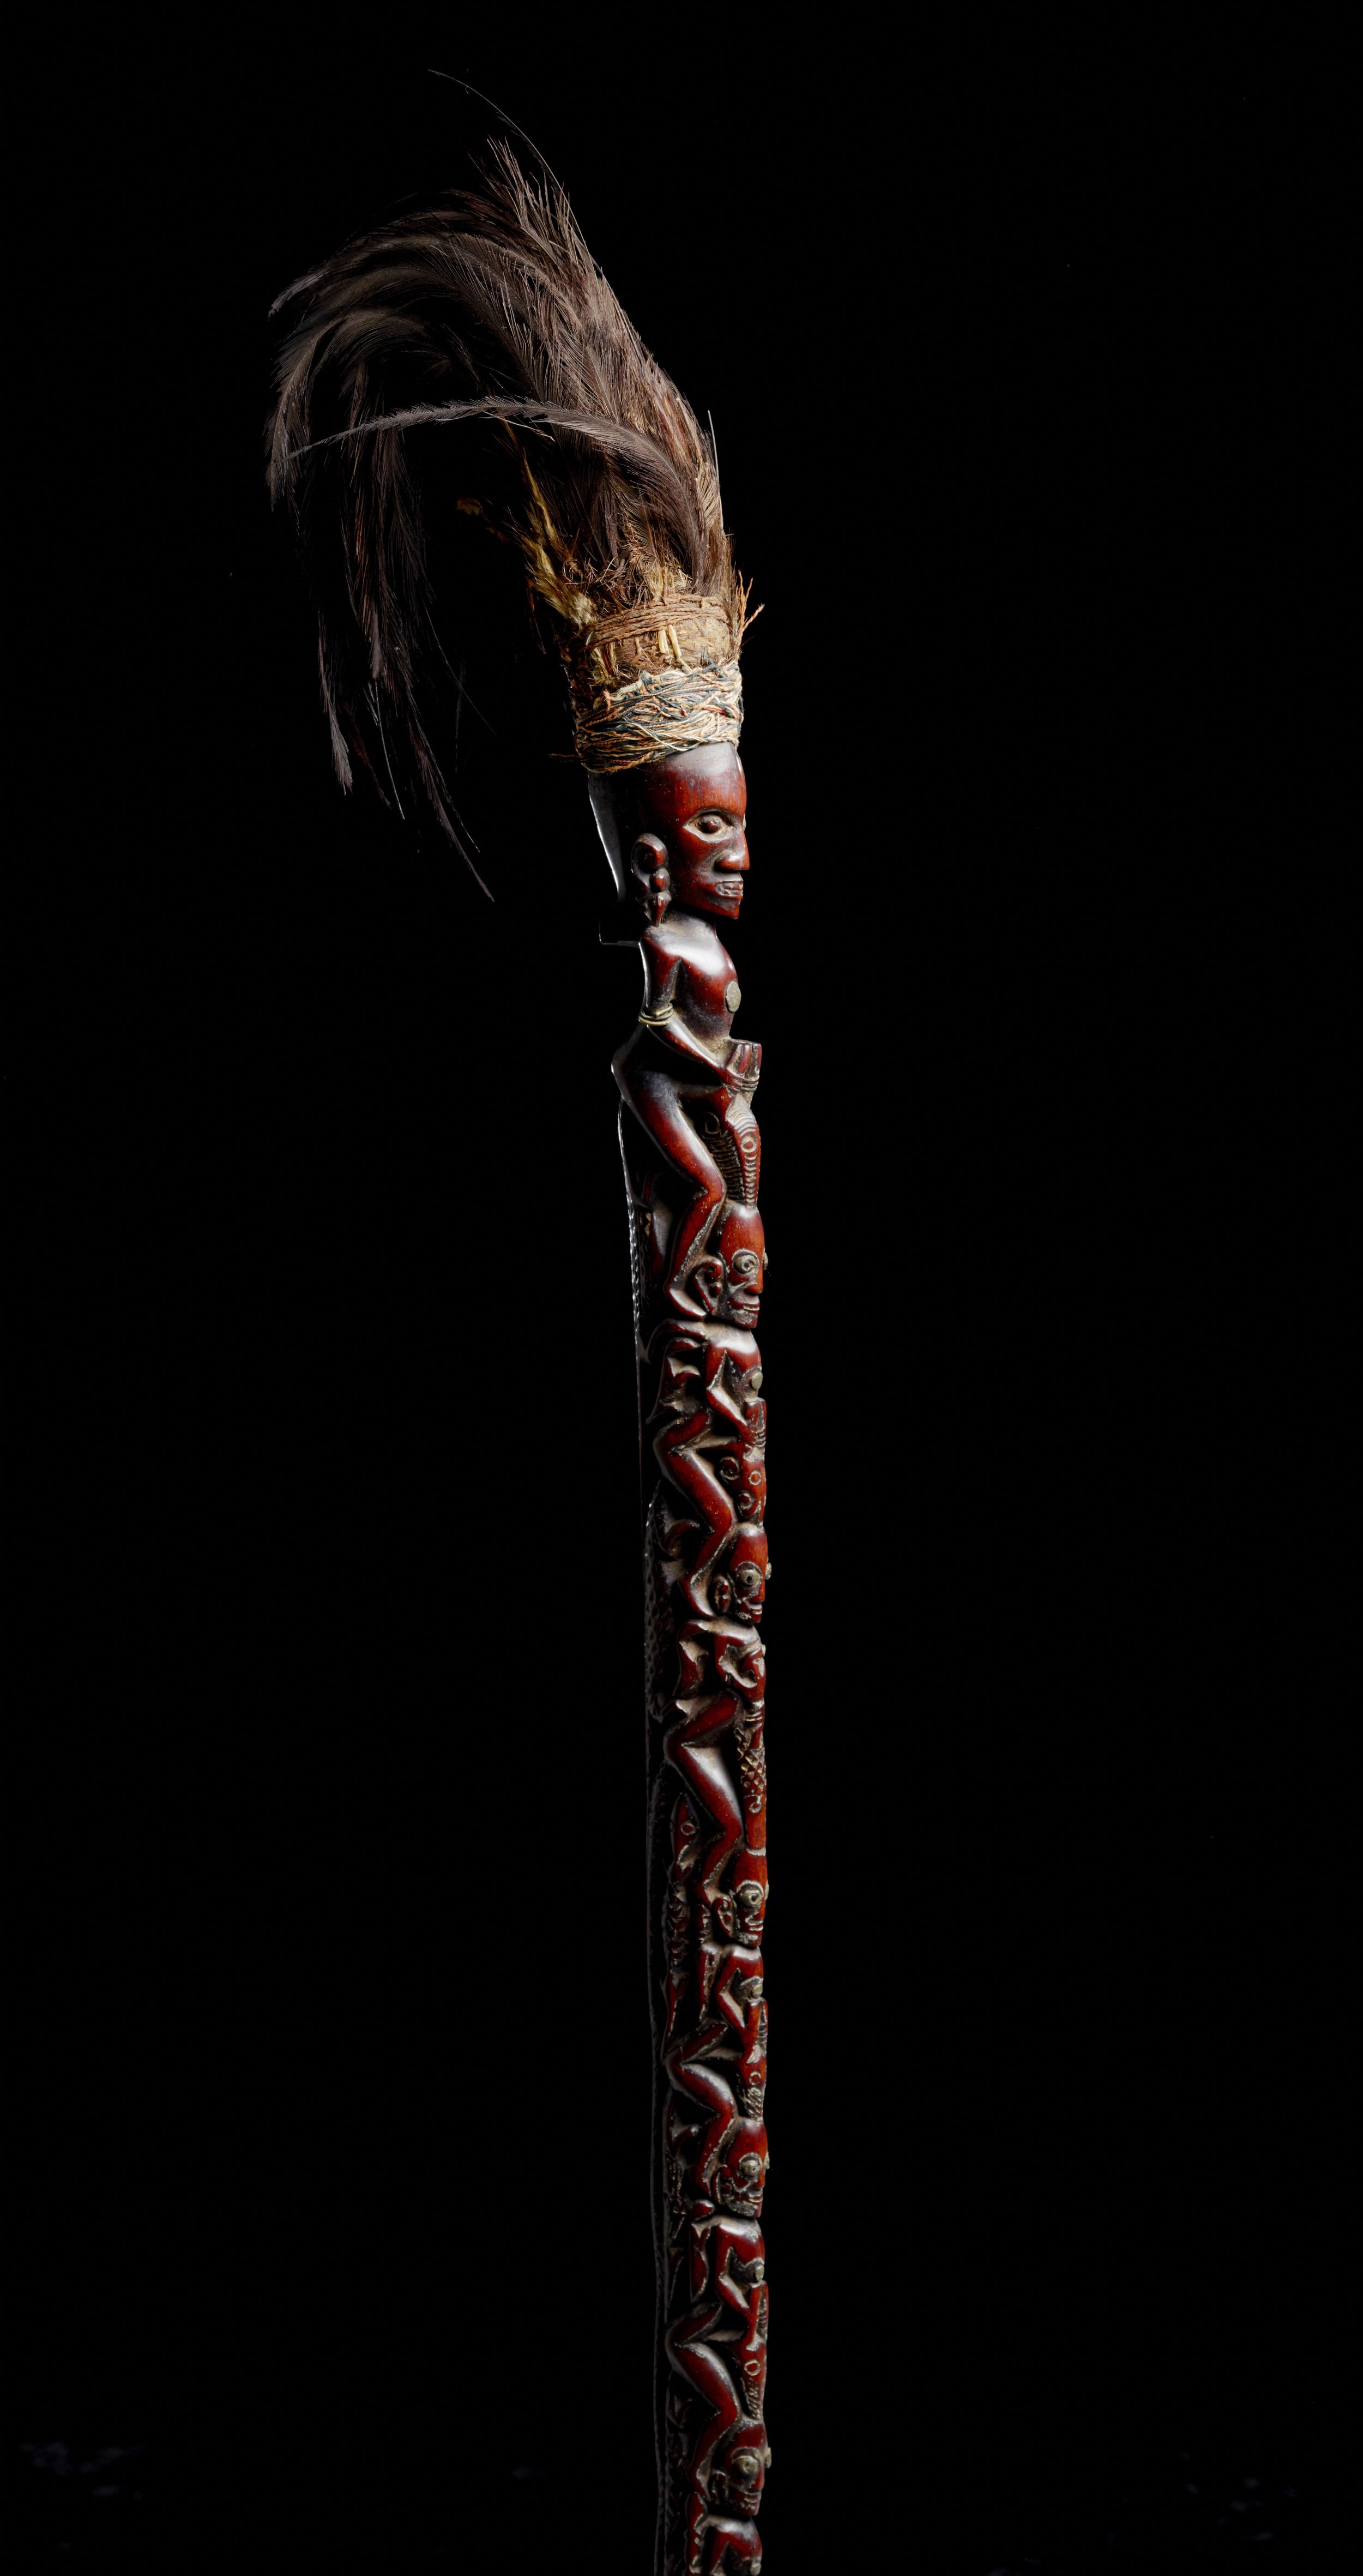 Priest's Staff |  Tunggal Panaluan  © The Dallas Museum of Art | Texas, USA